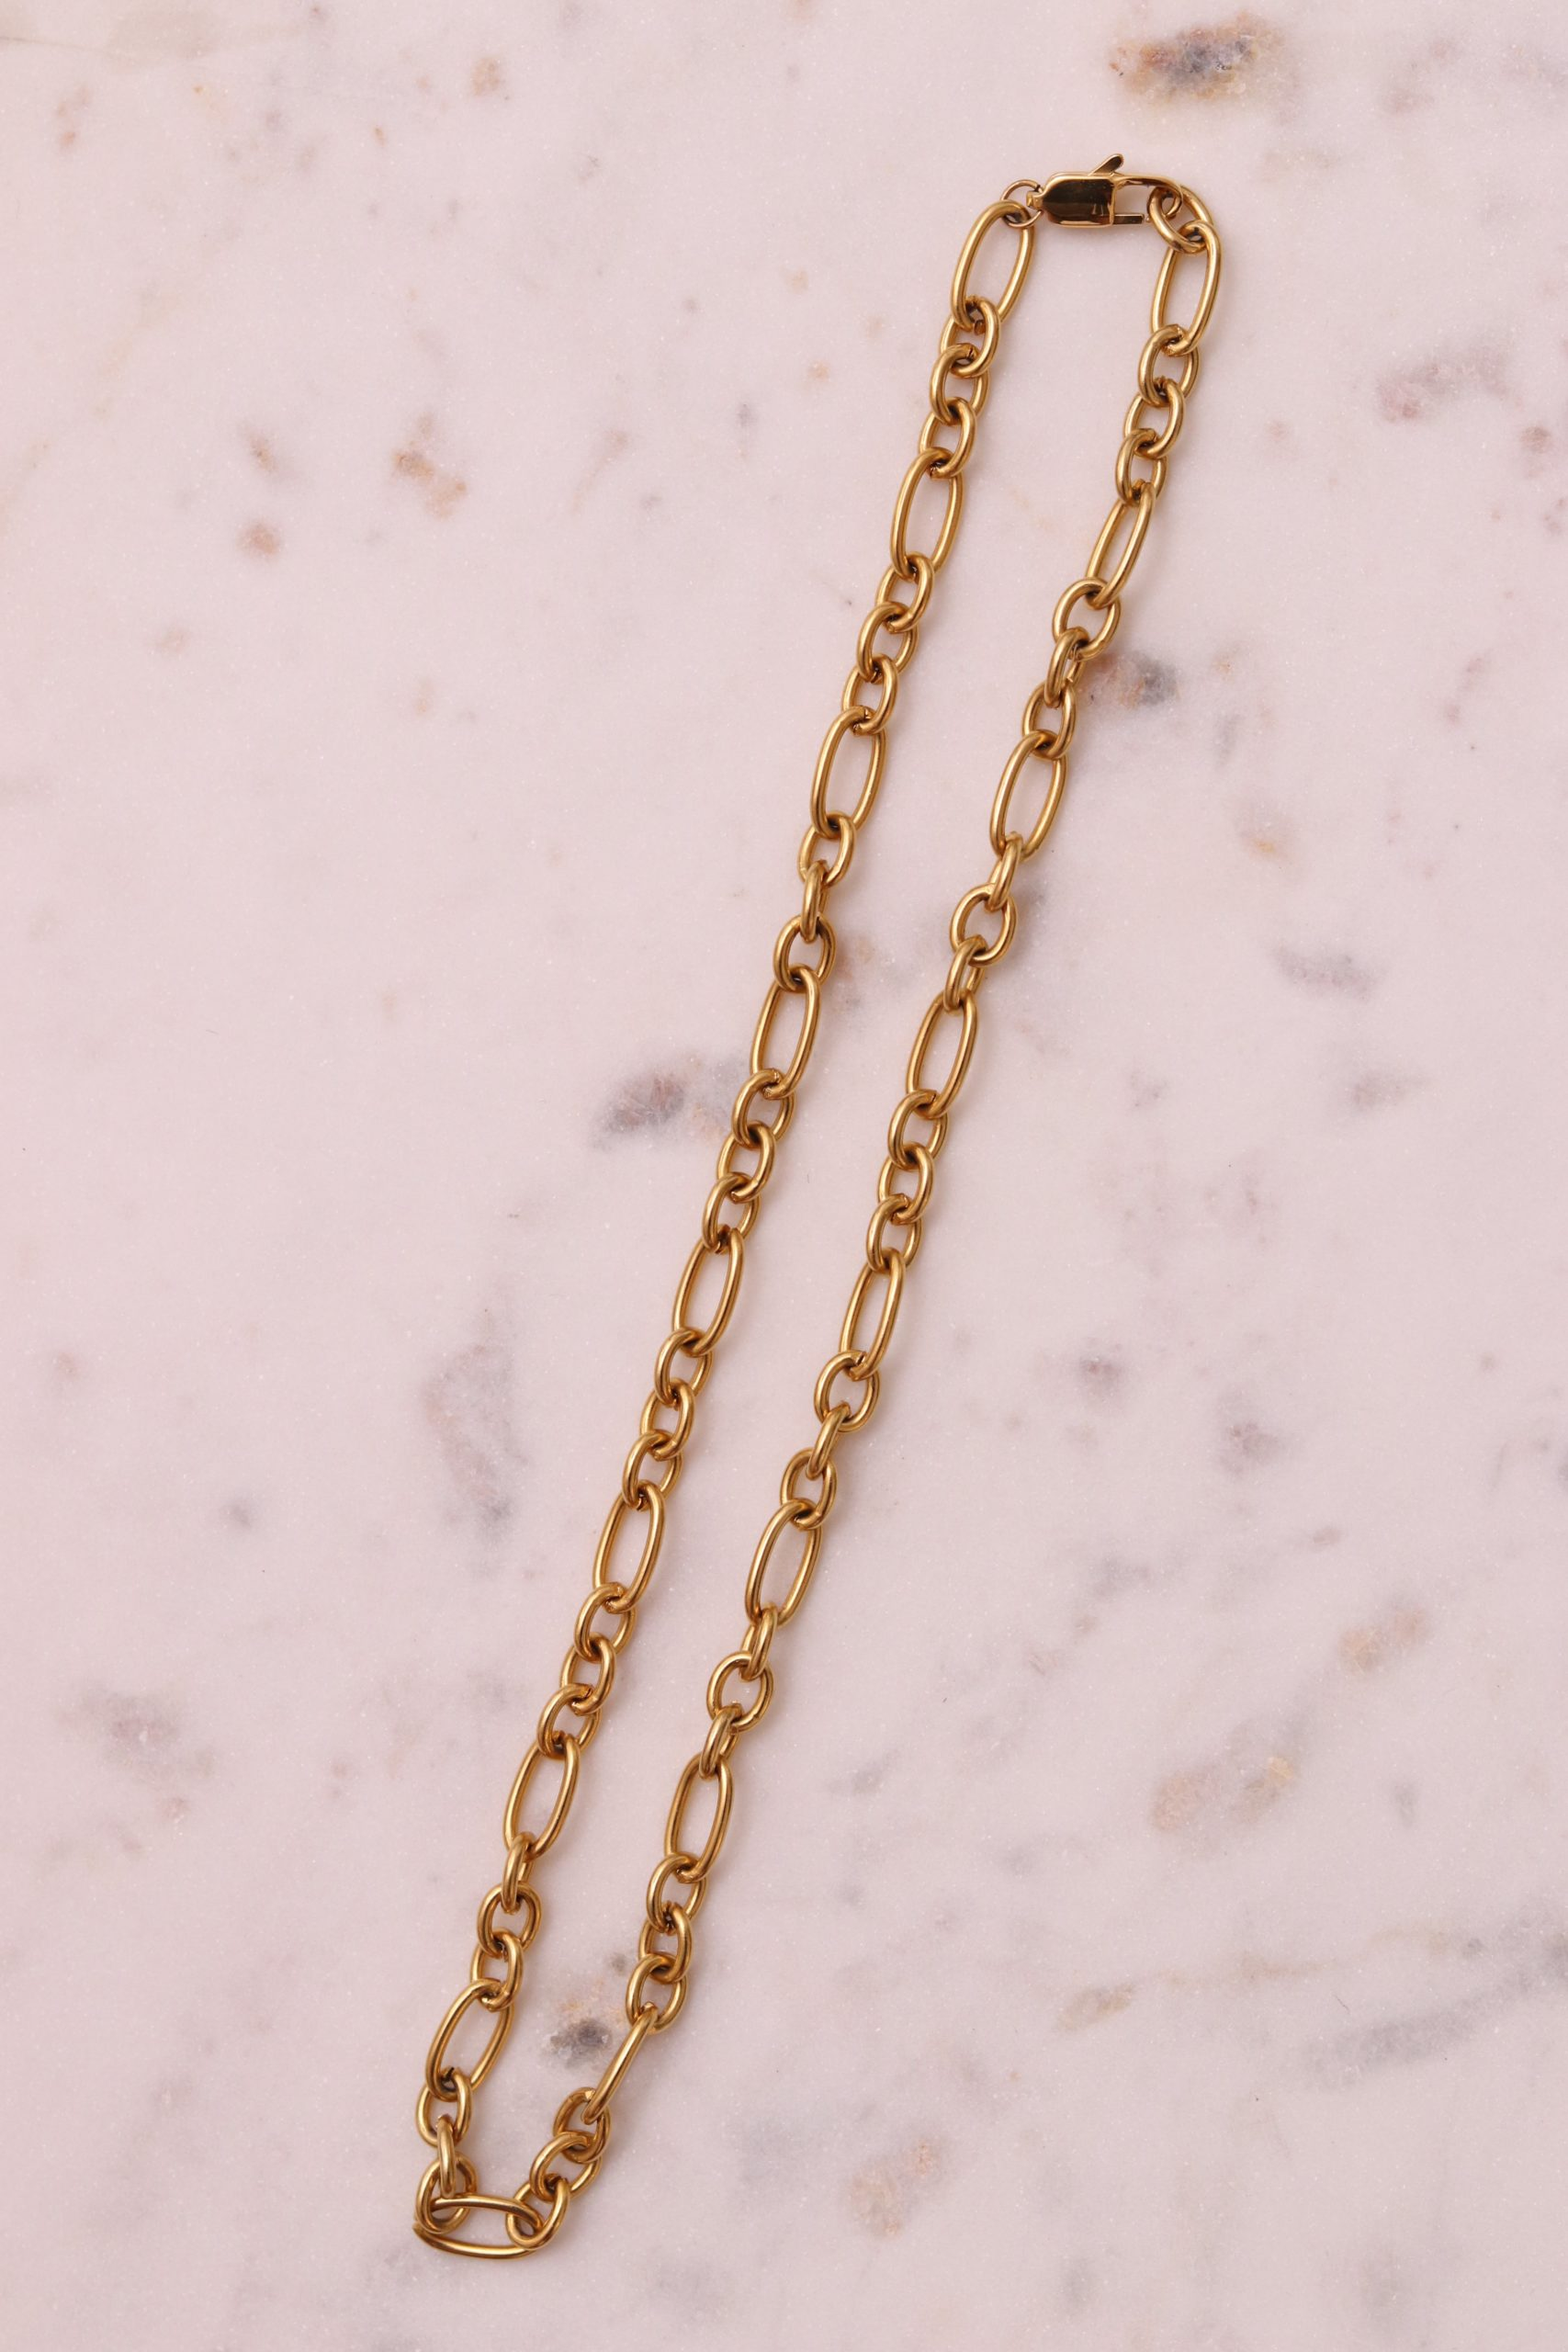 Collier grosse maille femme